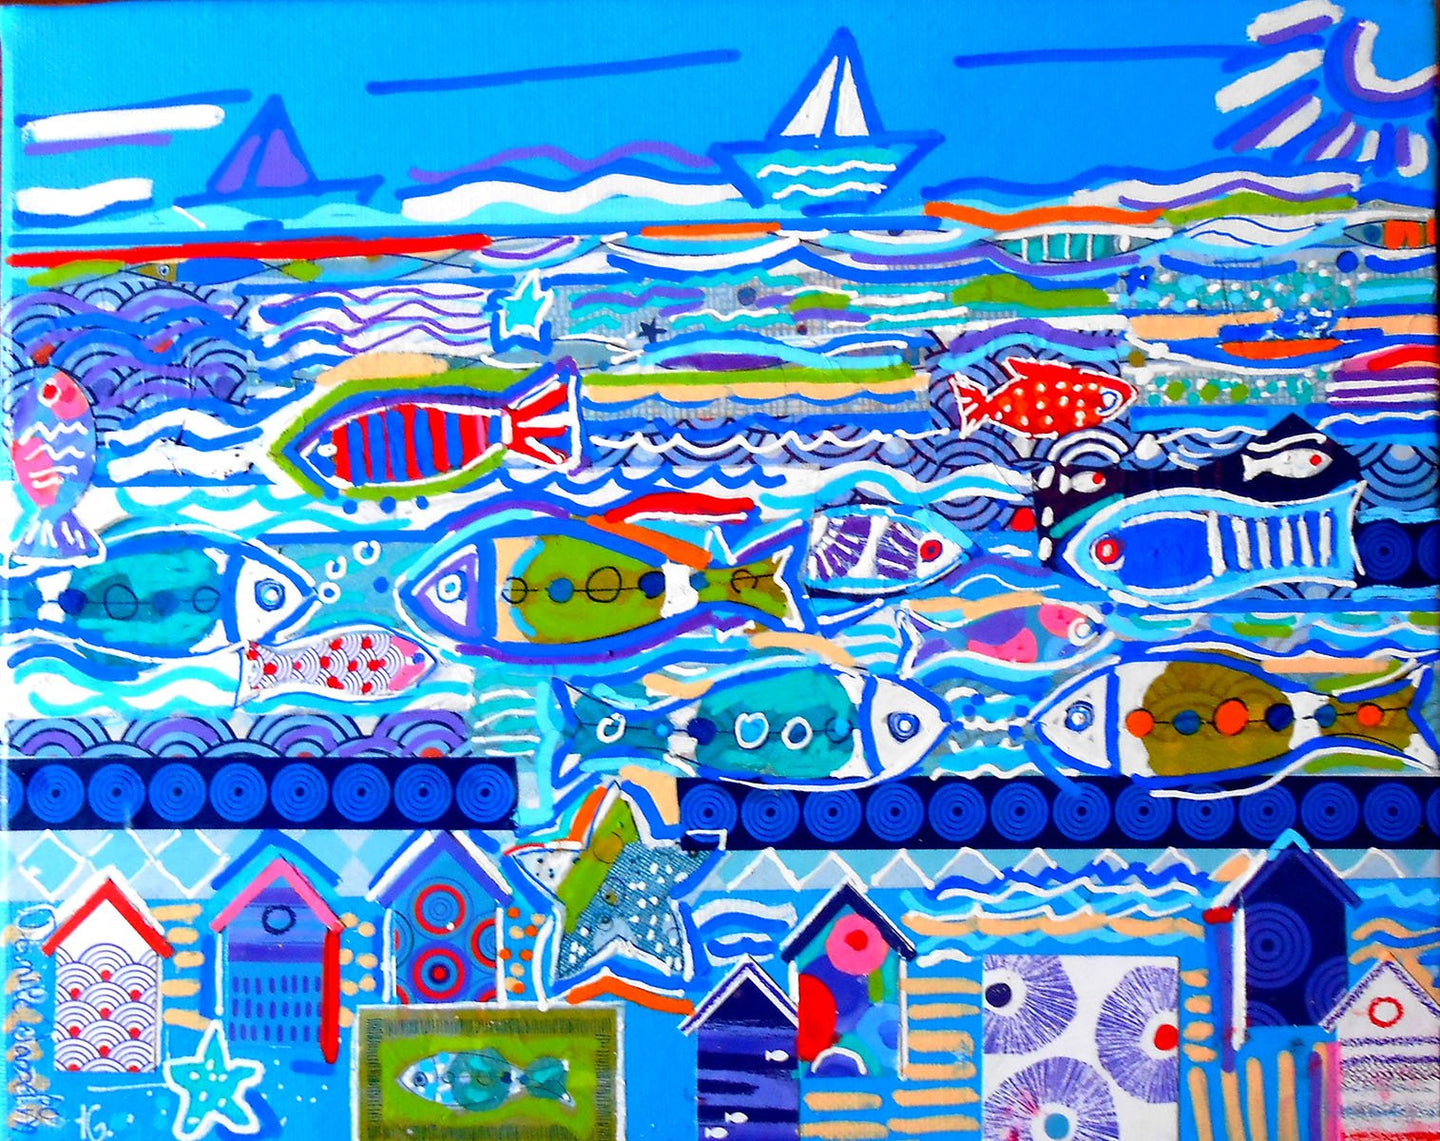 JASSELIN Danièle - On the sea (tableau Acrylique et collages